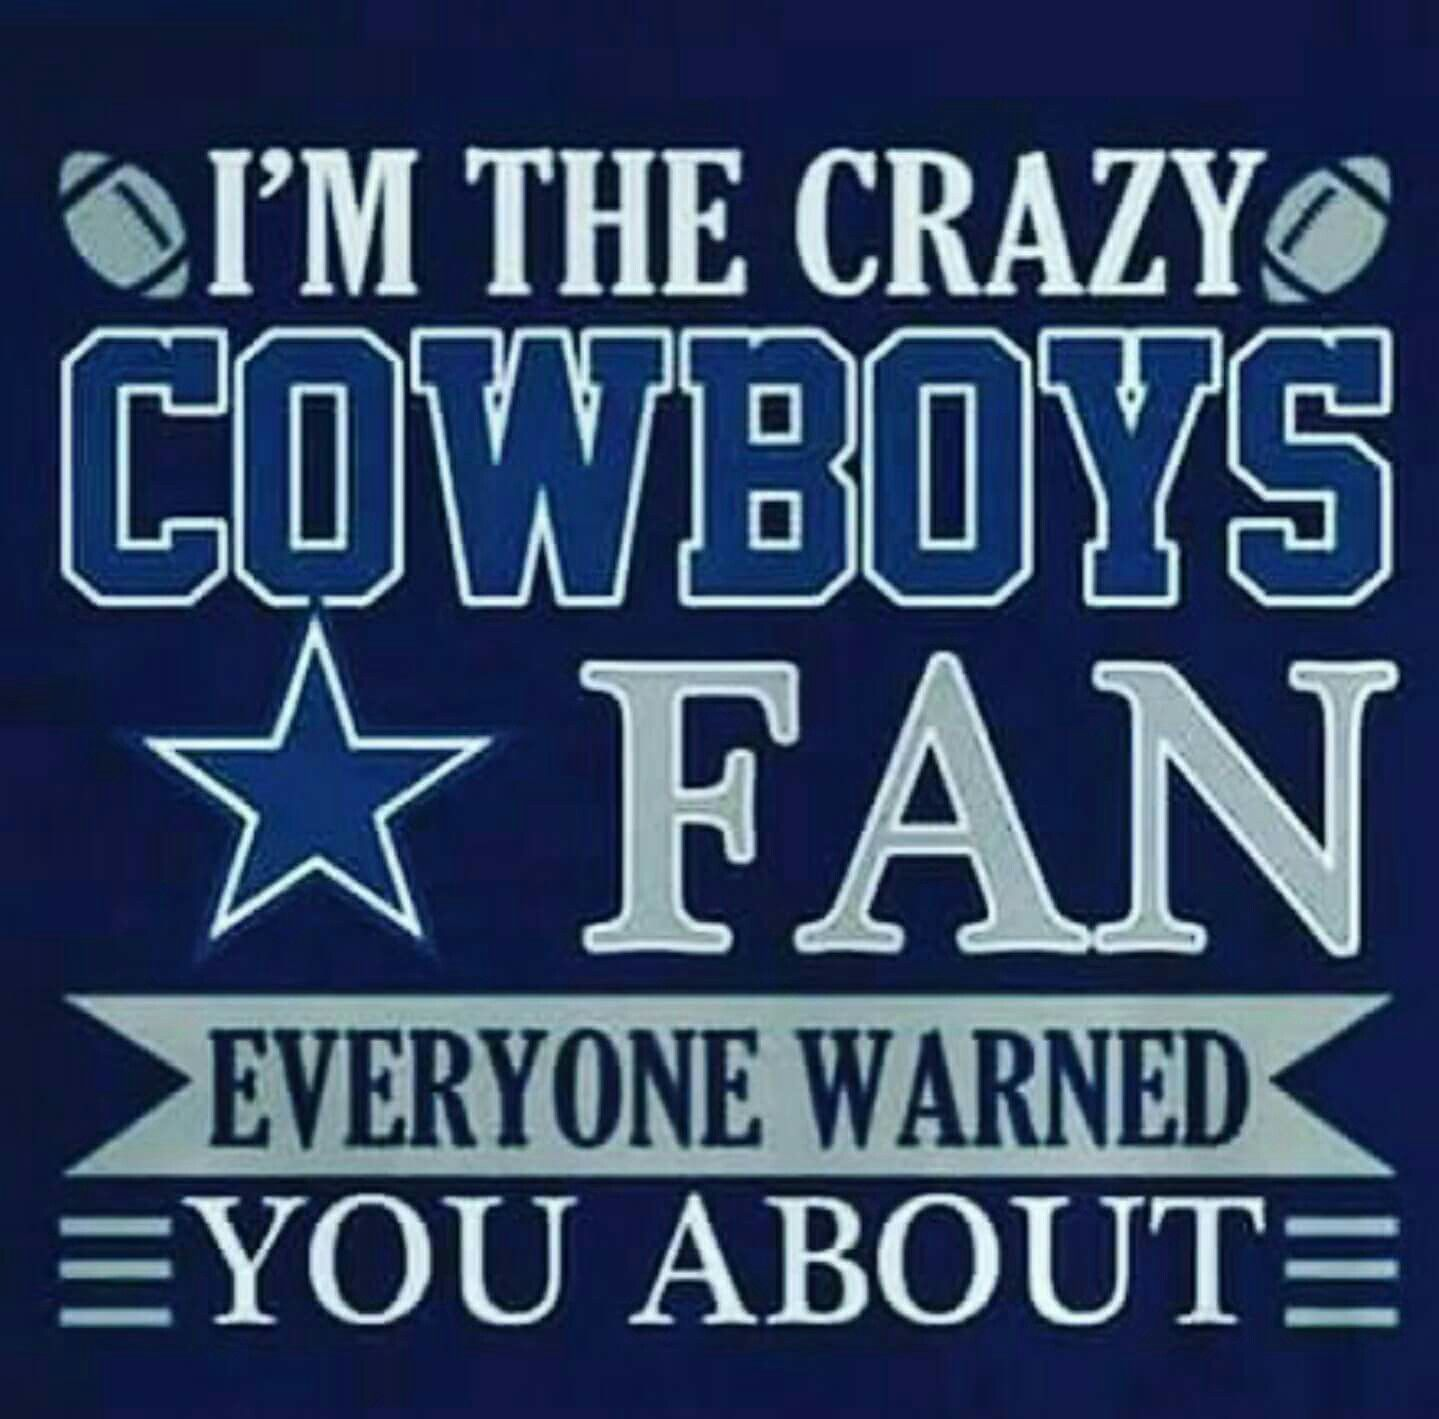 I Stand By My Team - Dallas Cowboys - Pinterest